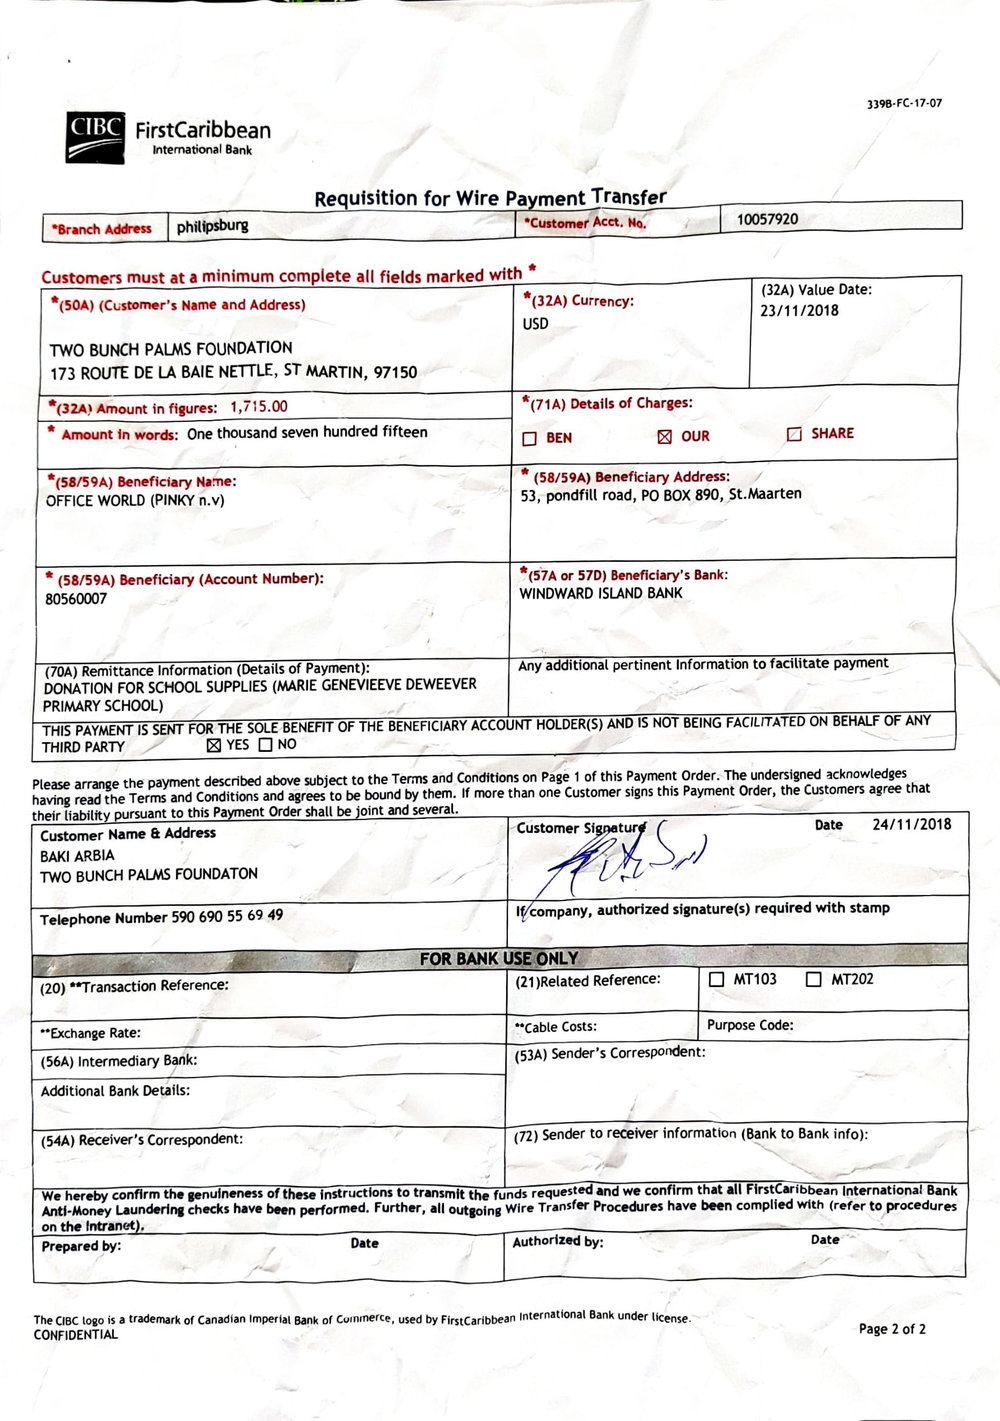 Payement To Office World for Marie Geneviève deweever school-1.jpg